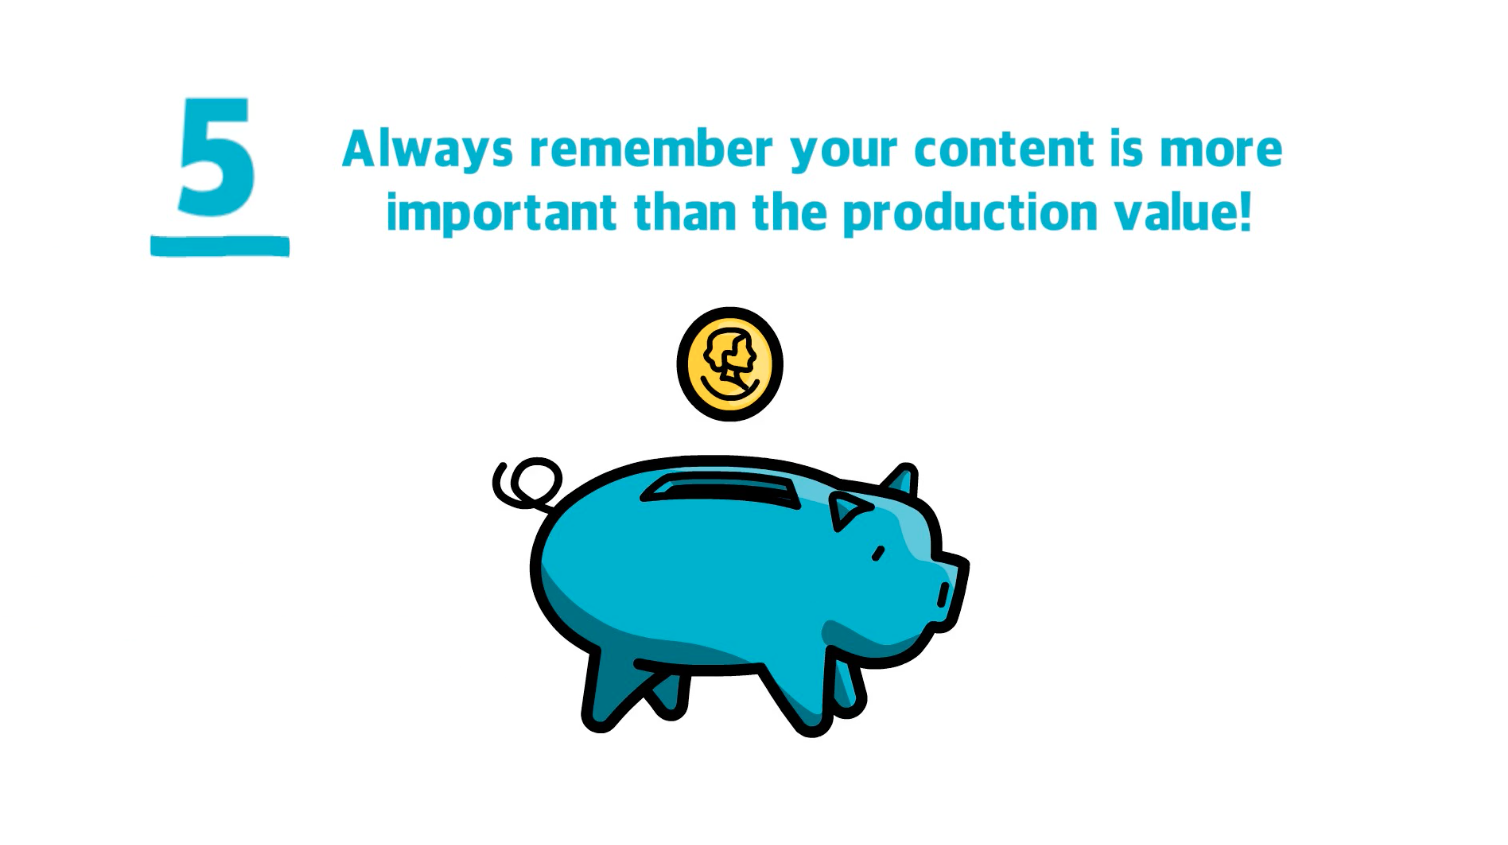 Remember that the content in your video is more important than the production value